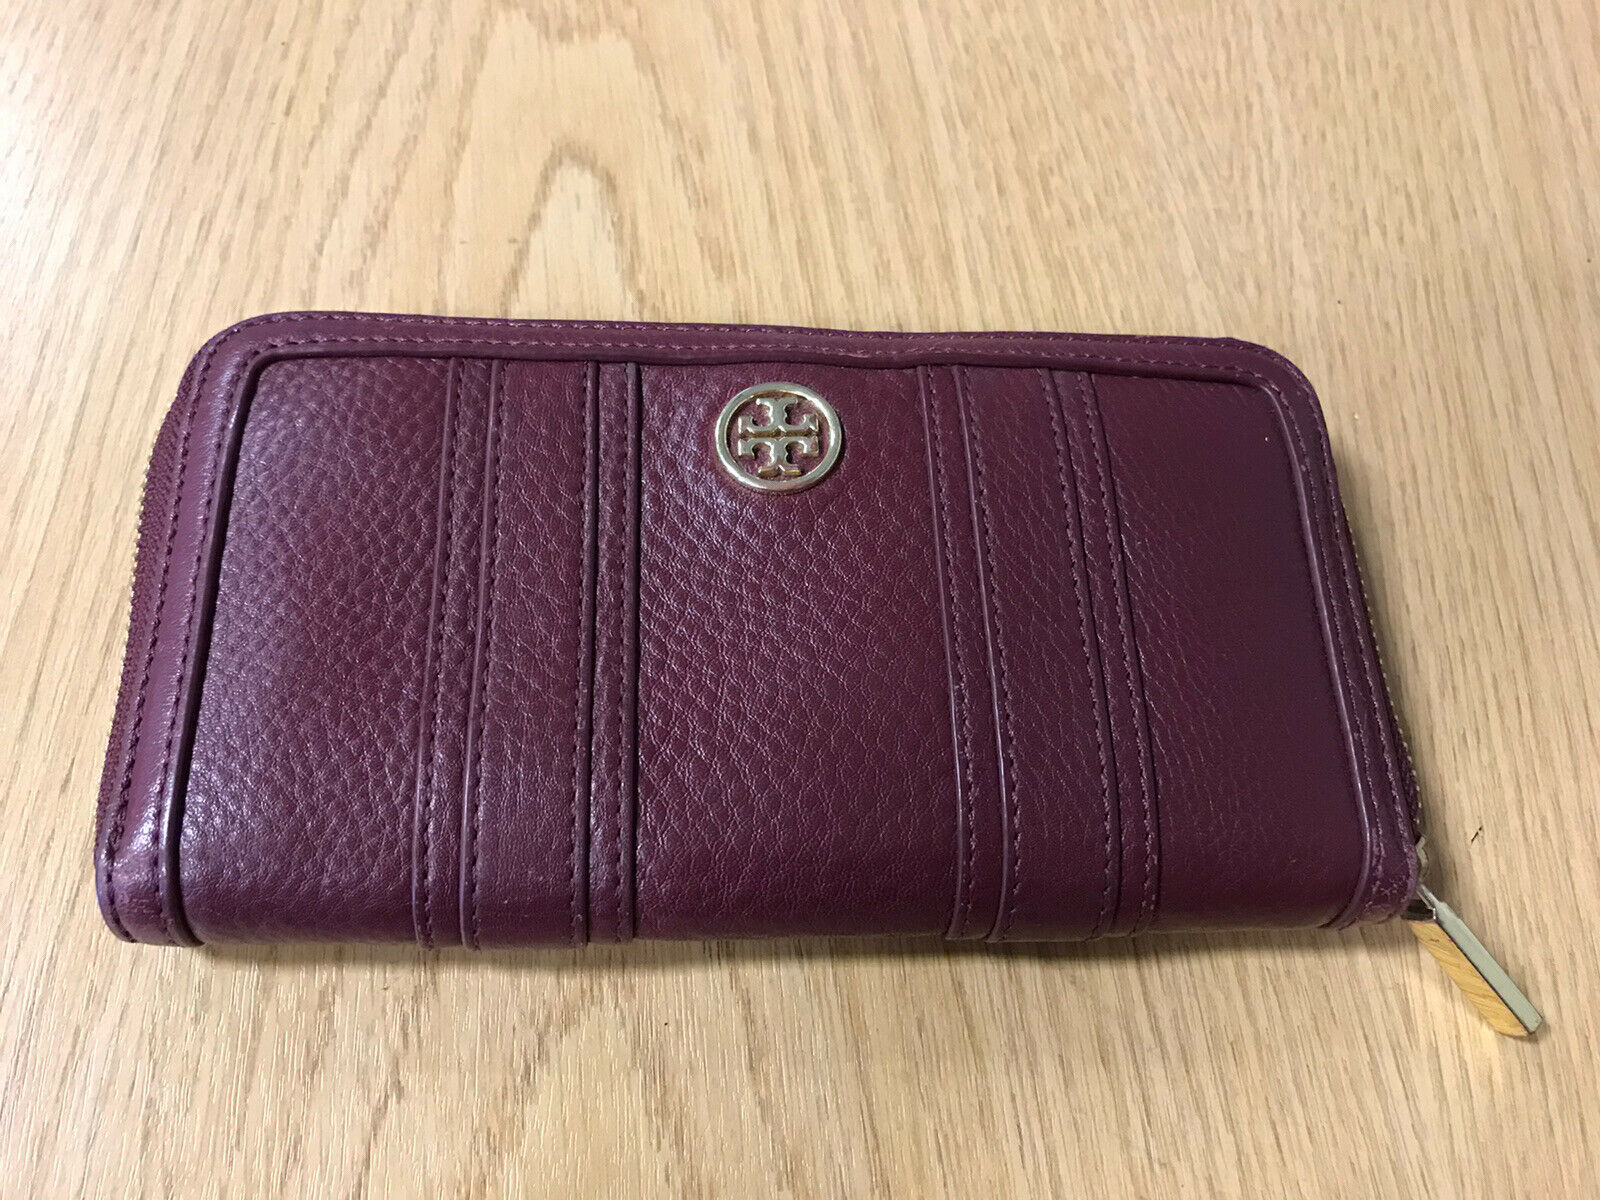 (S/C Newcastle) Tory Burch burgundy Zip Up Ladies Purse With Inner Card / Money